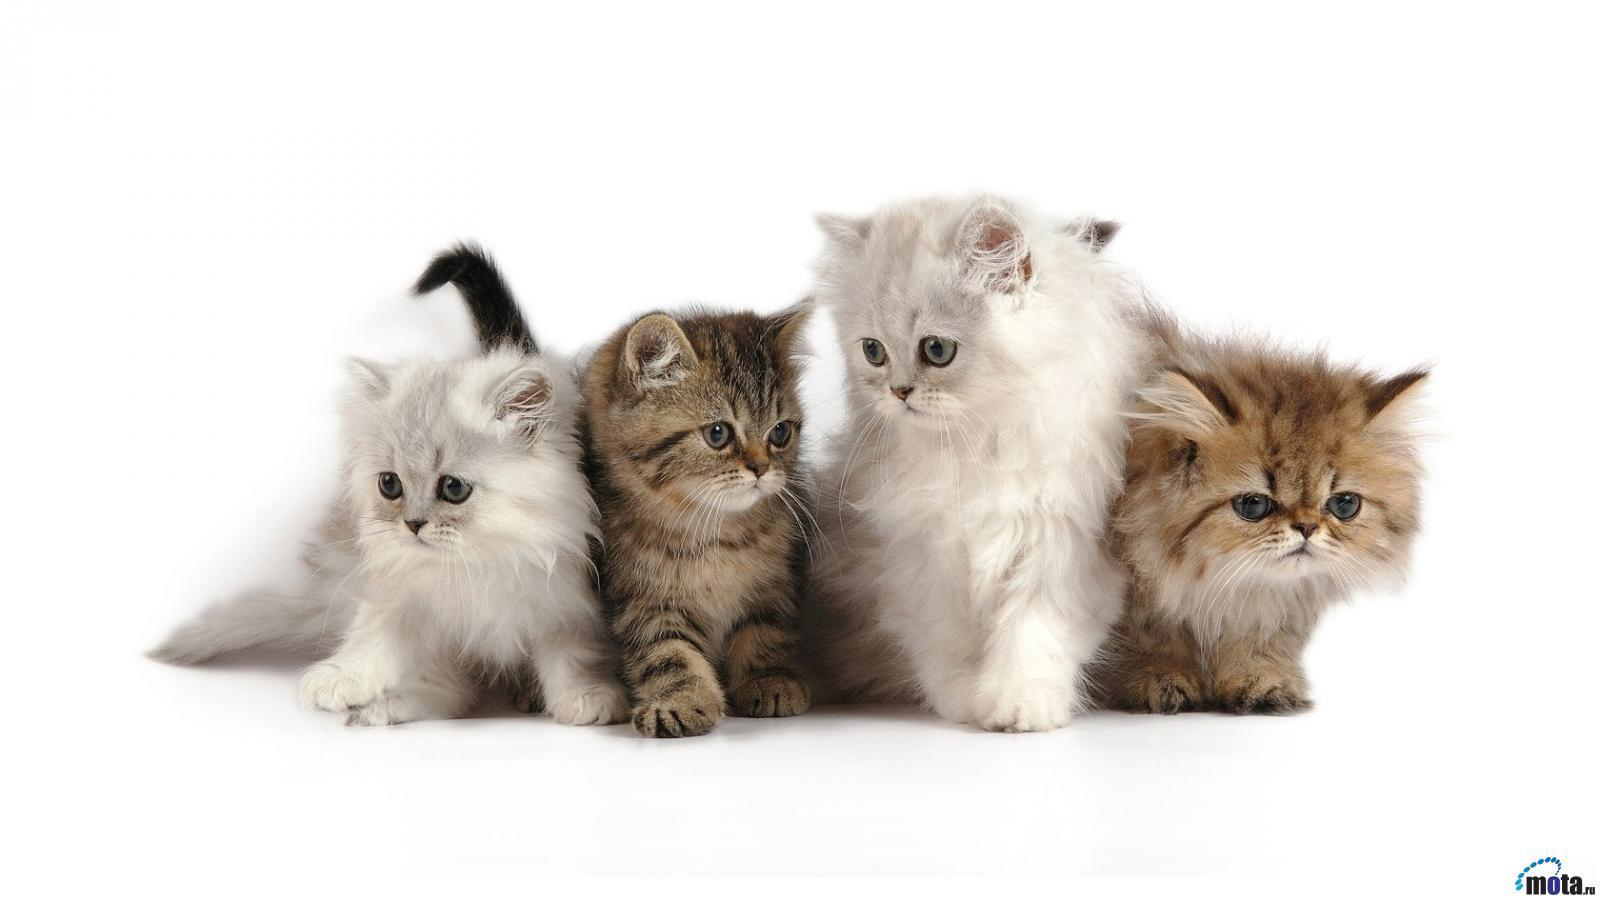 14633 download wallpaper Animals, Cats screensavers and pictures for free